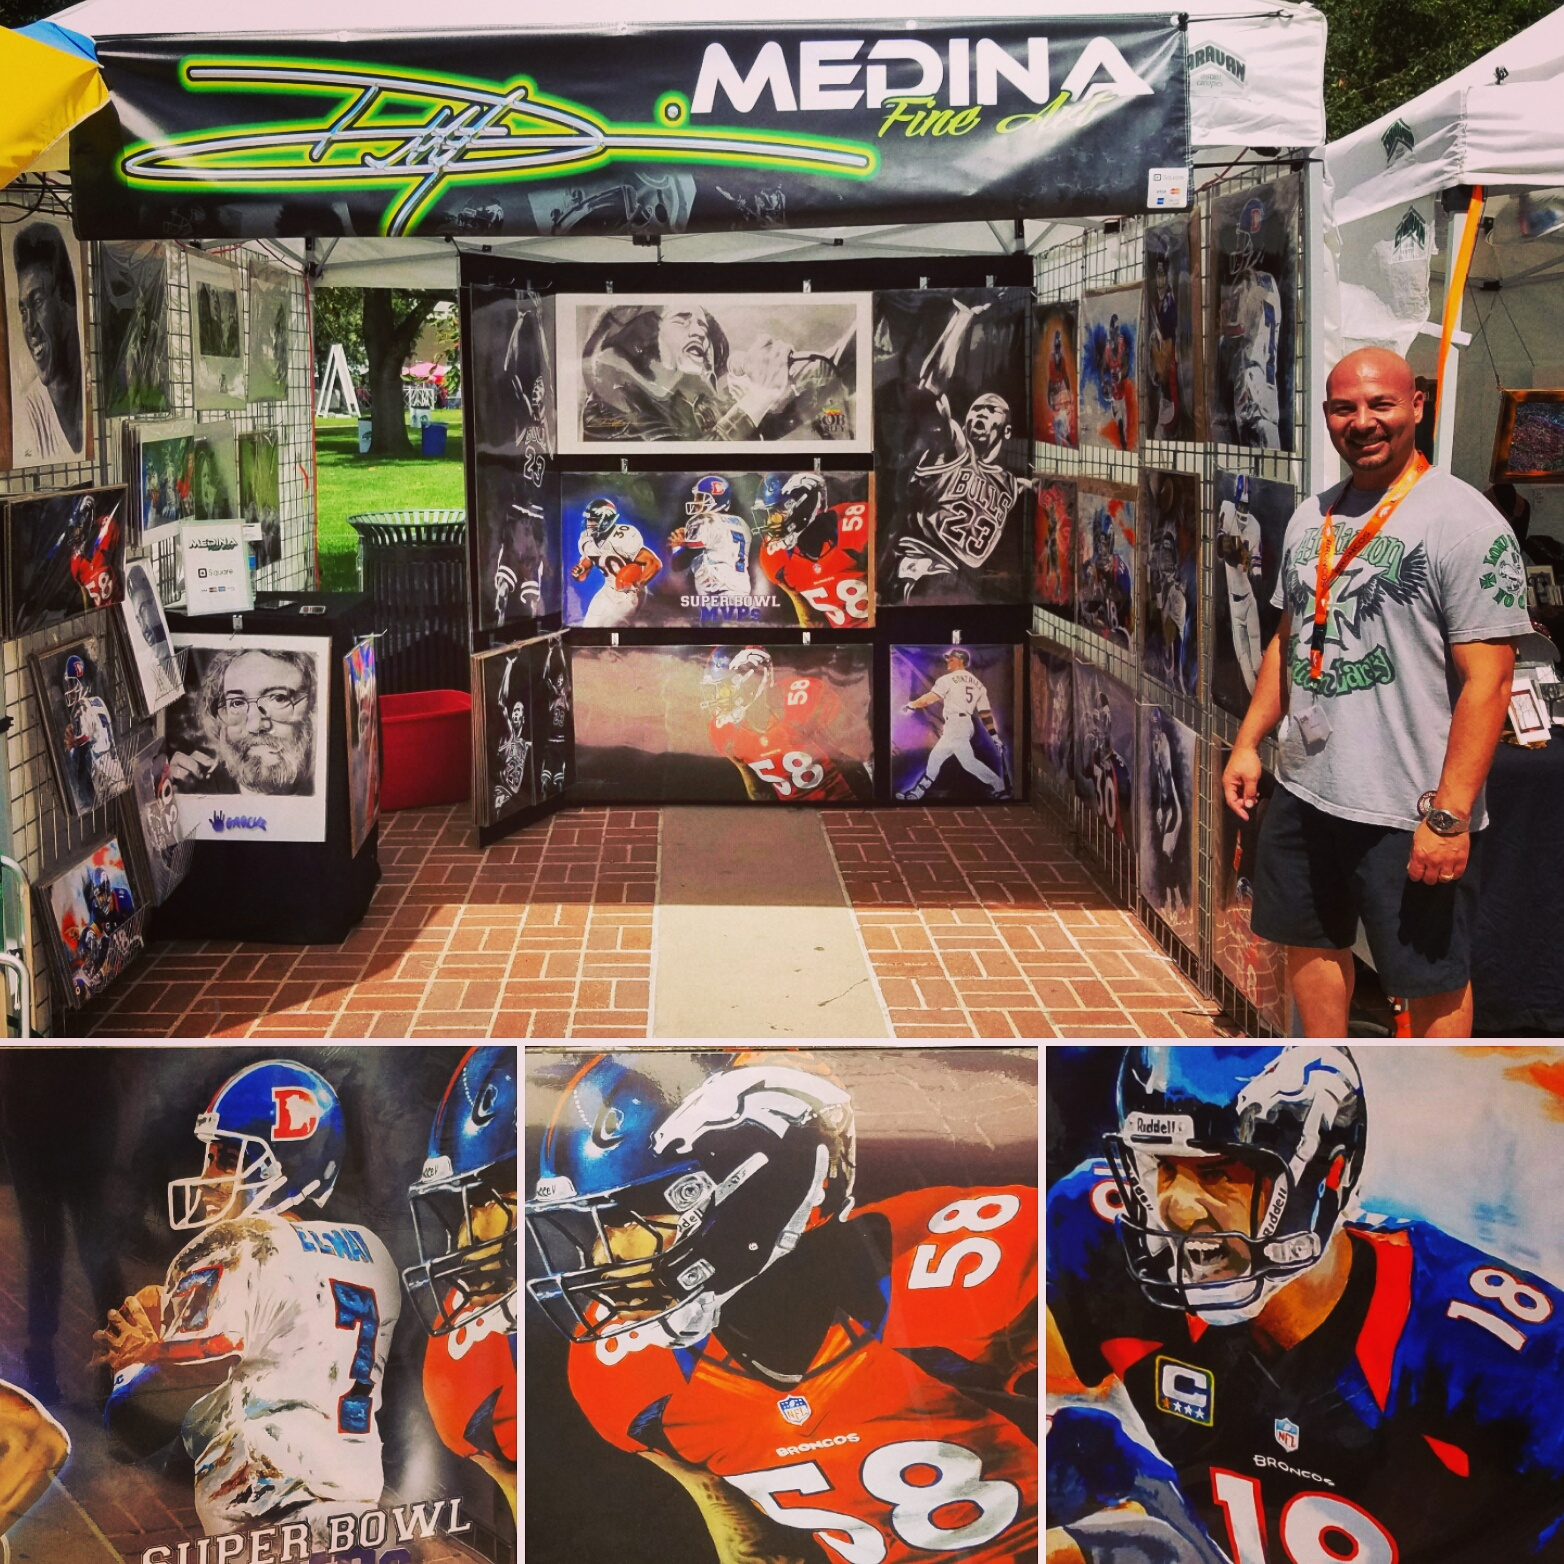 Medina Fine Art - A Taste of Colorado